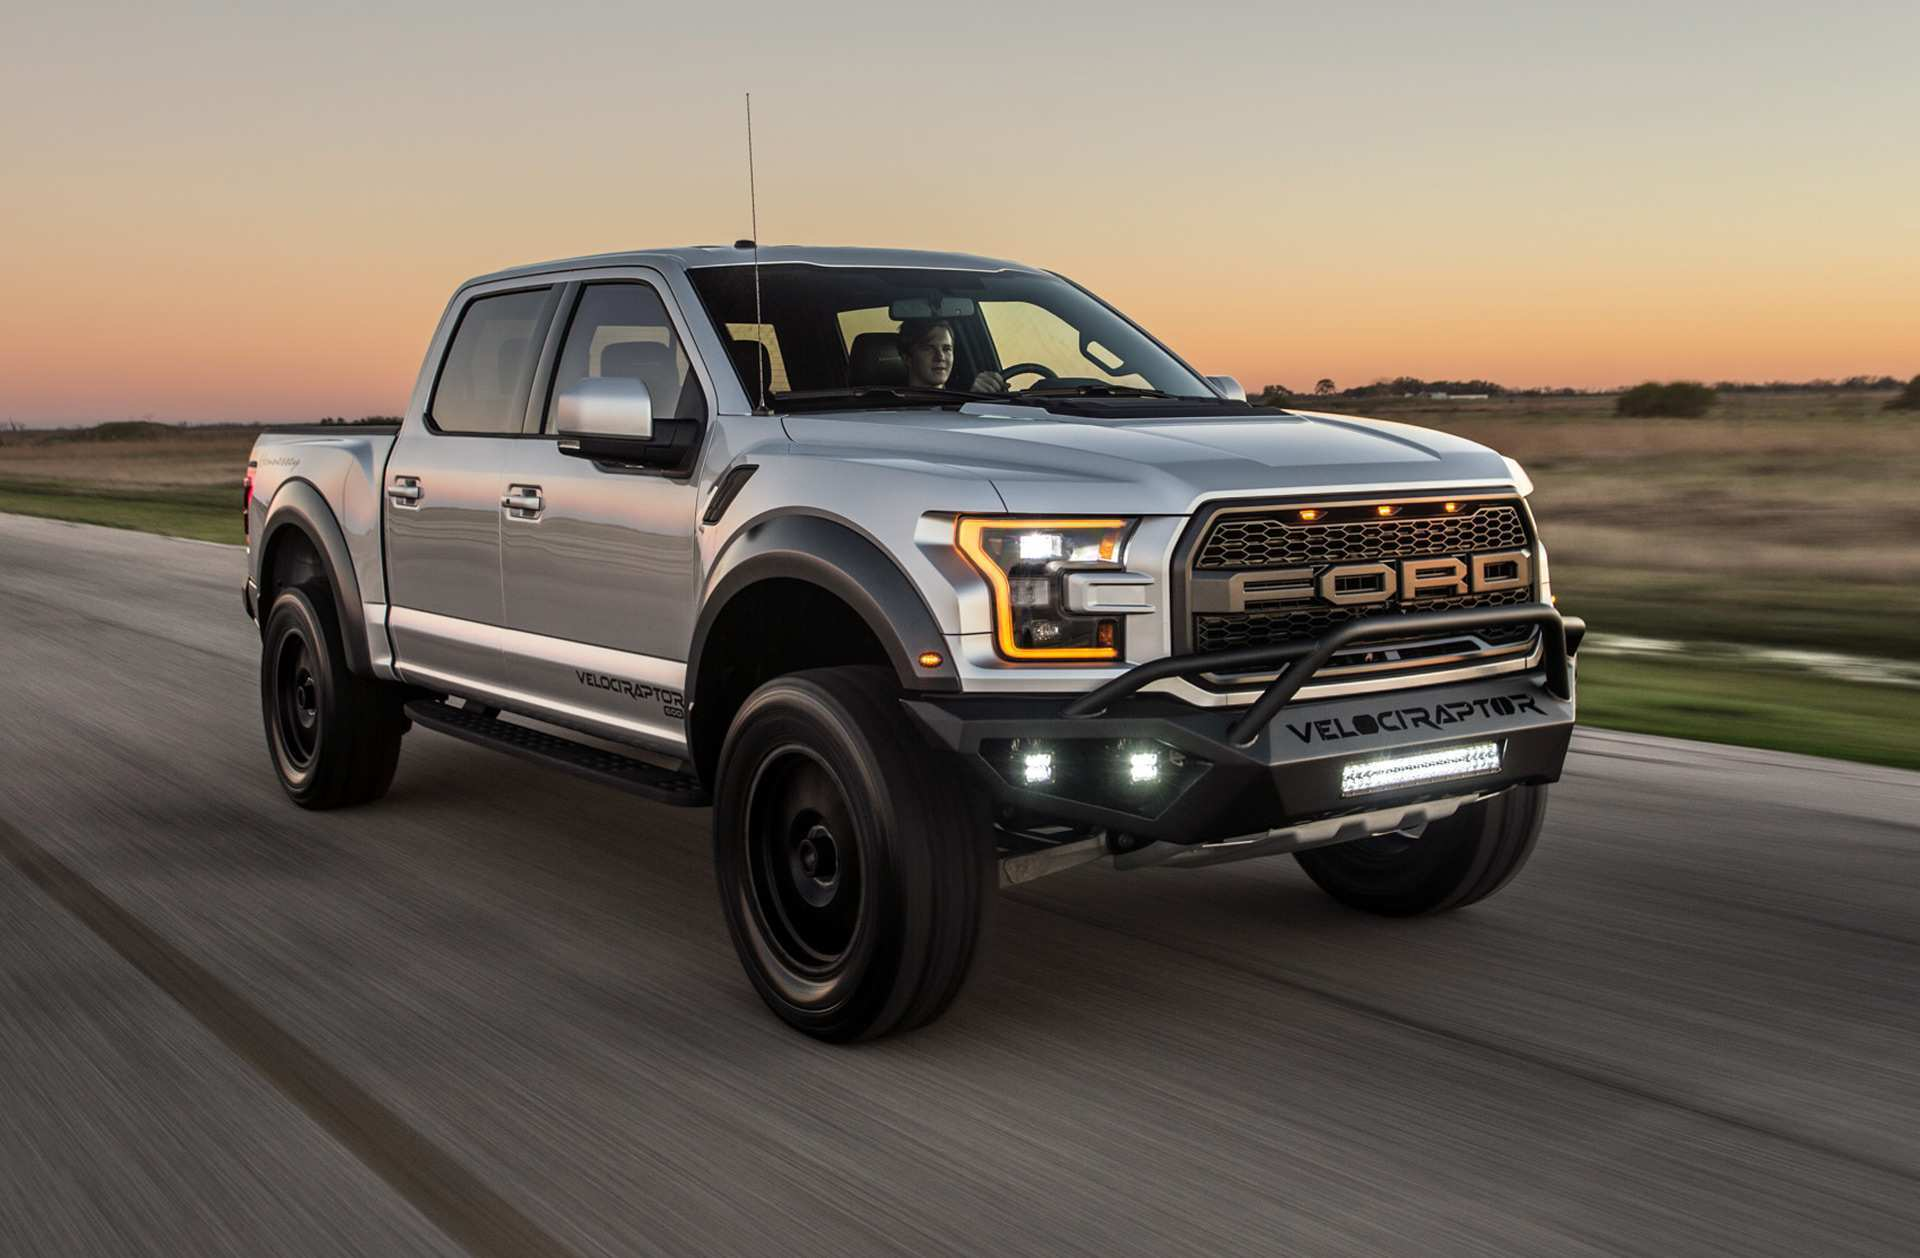 72 All New 2019 Ford 150 Specs Speed Test with 2019 Ford 150 Specs